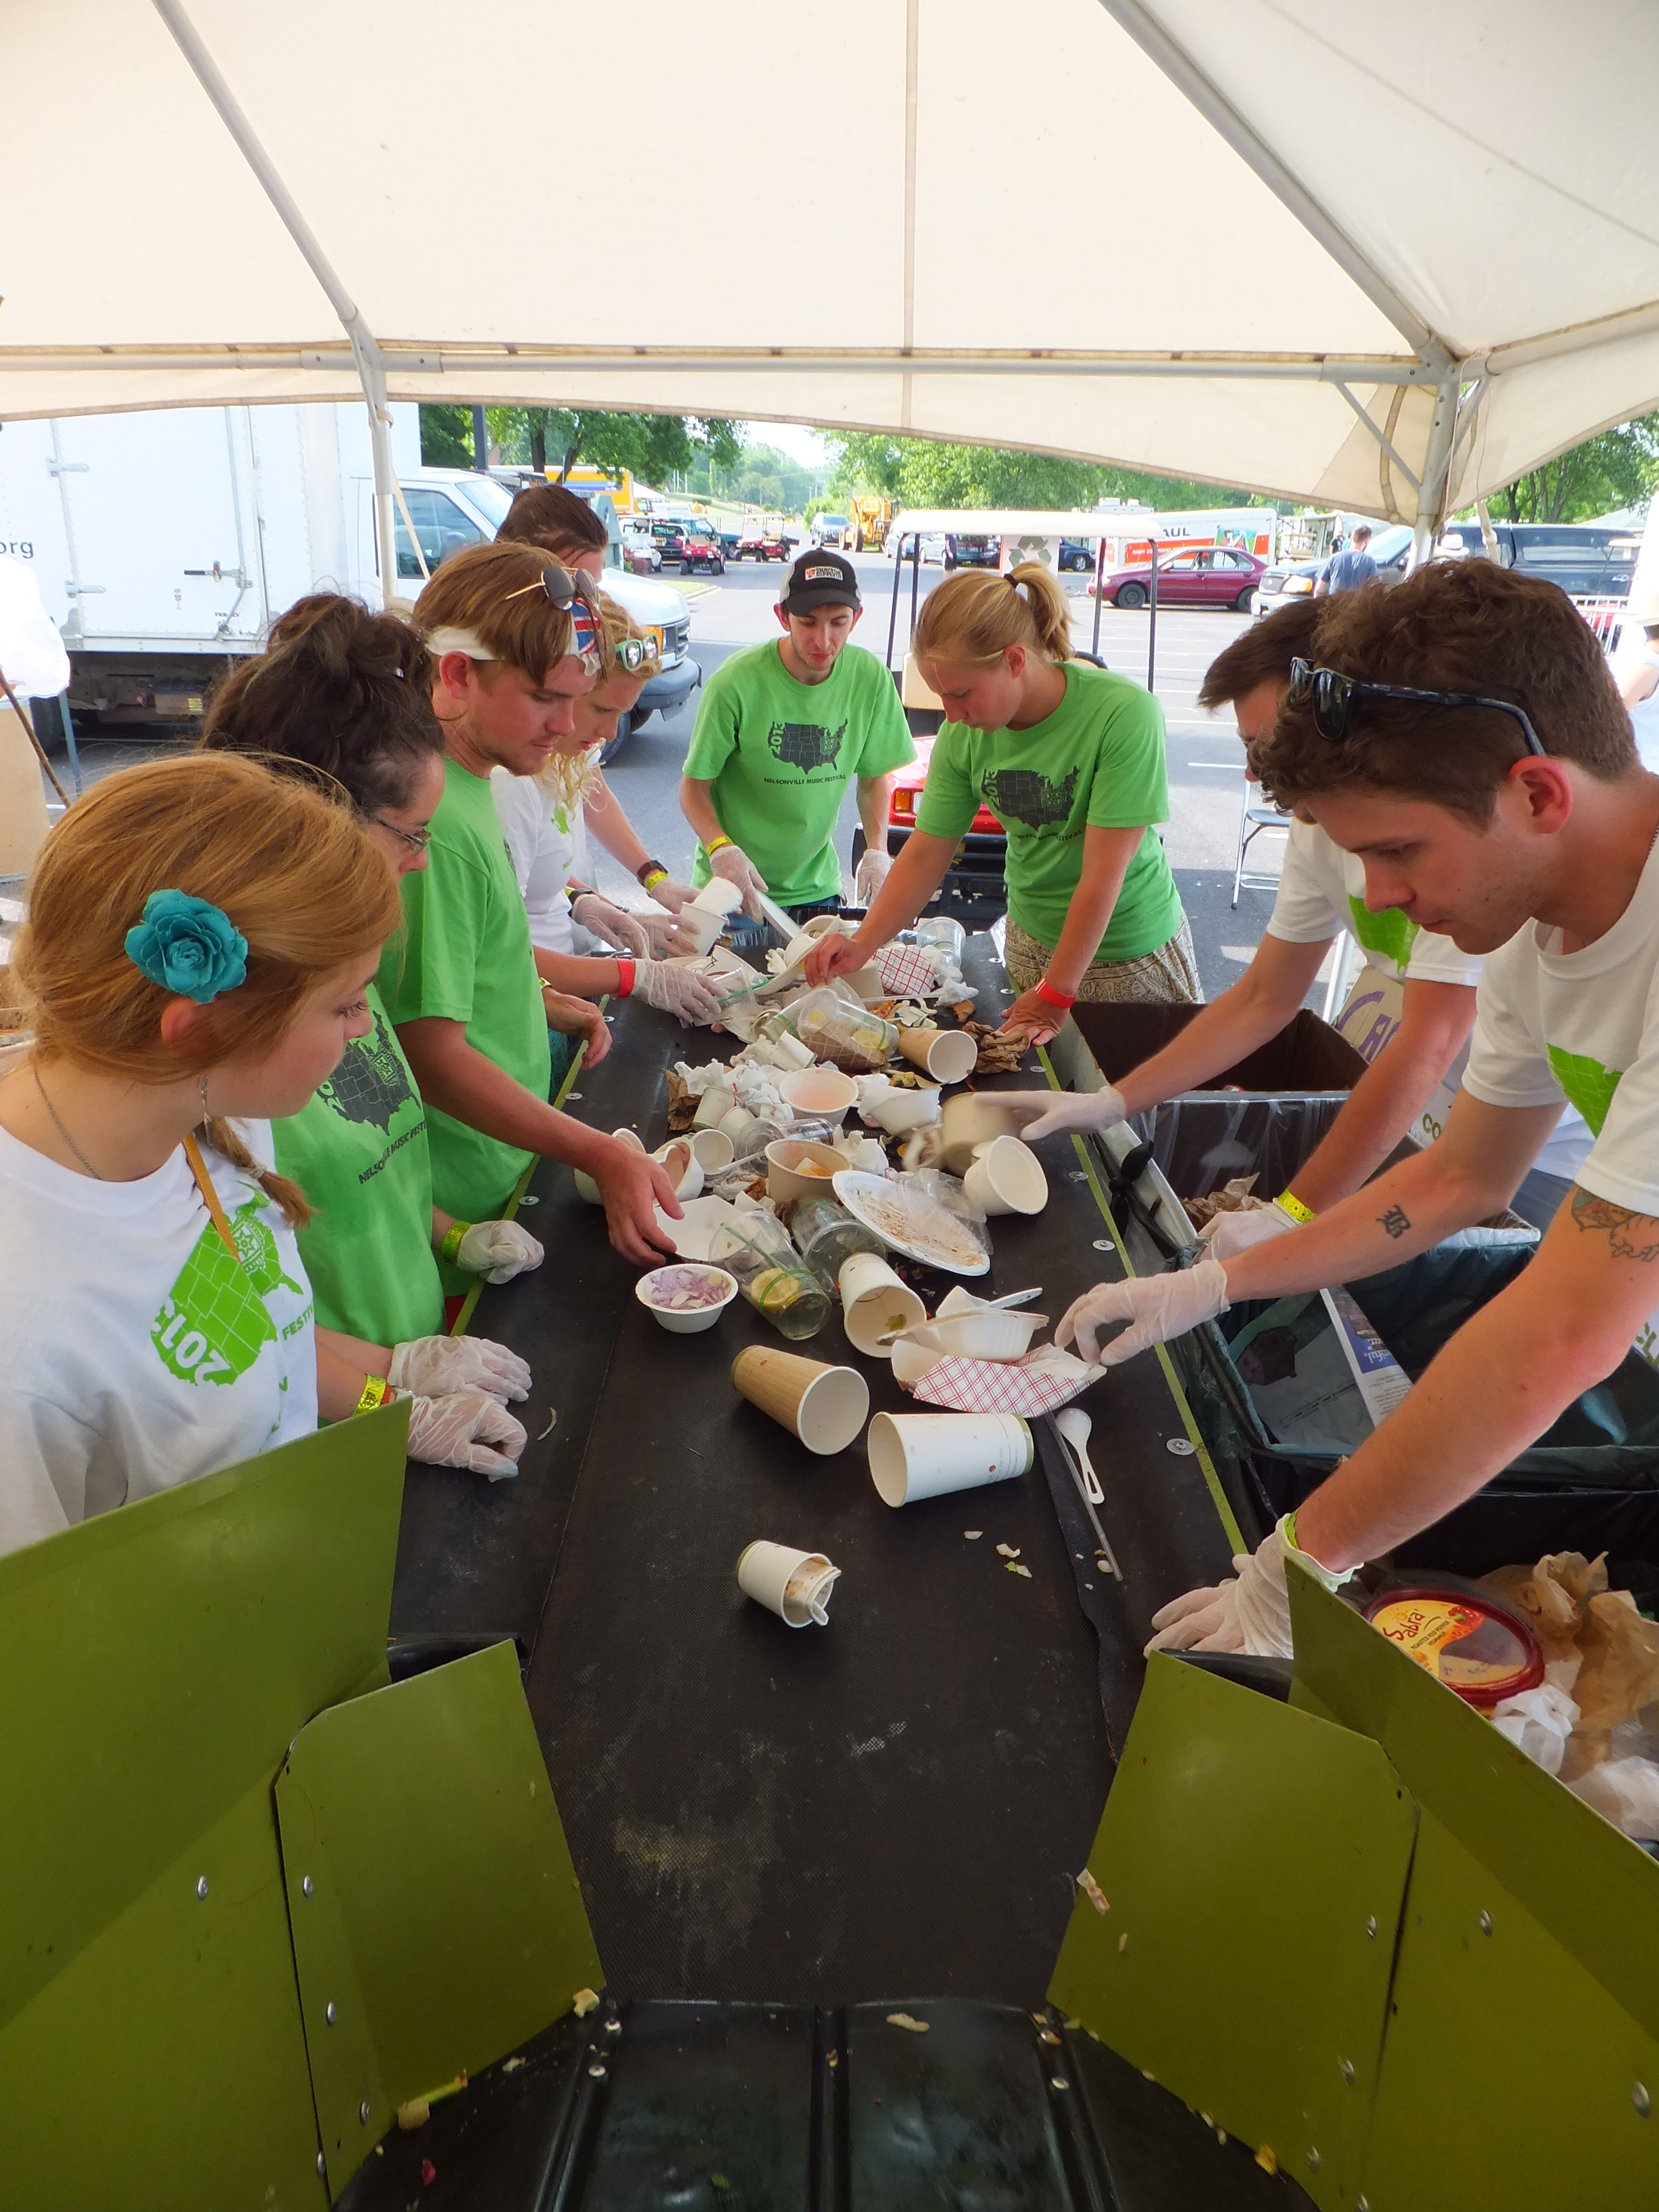 Volunteers sort compostables at Nelsonville Music Festival 2013.